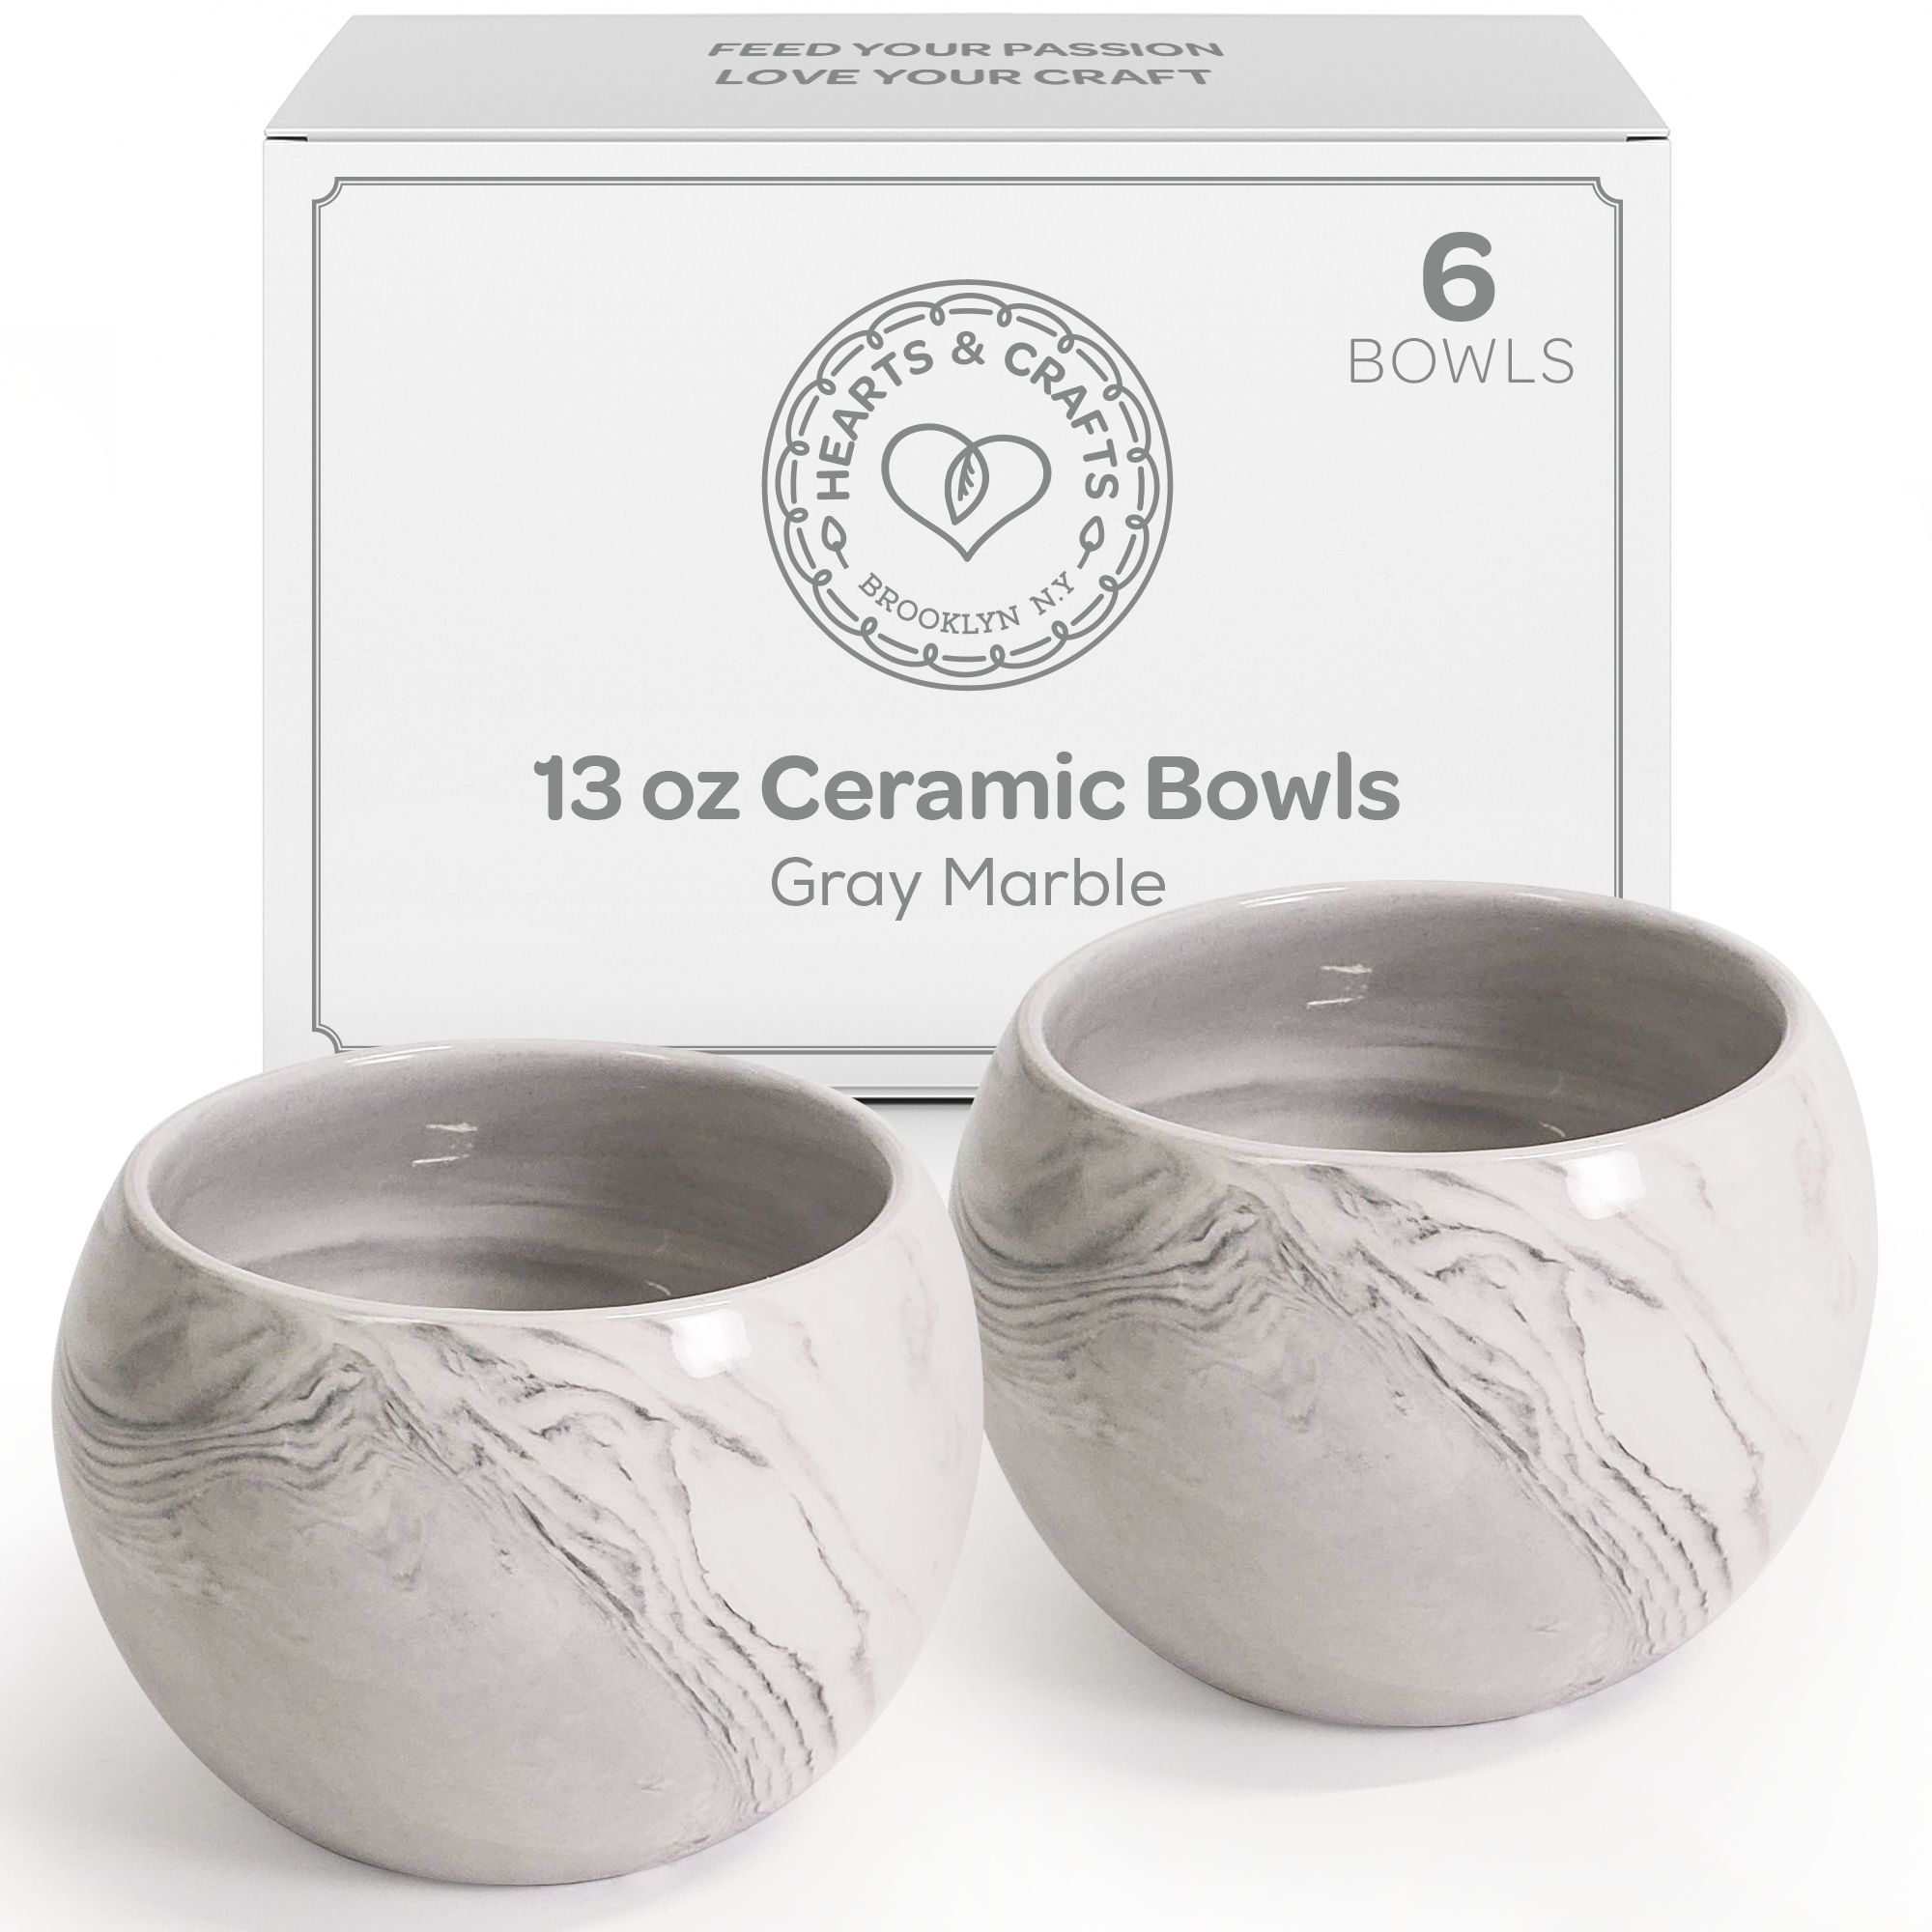 13oz Gray Marble Ceramic Containers – Set of 6